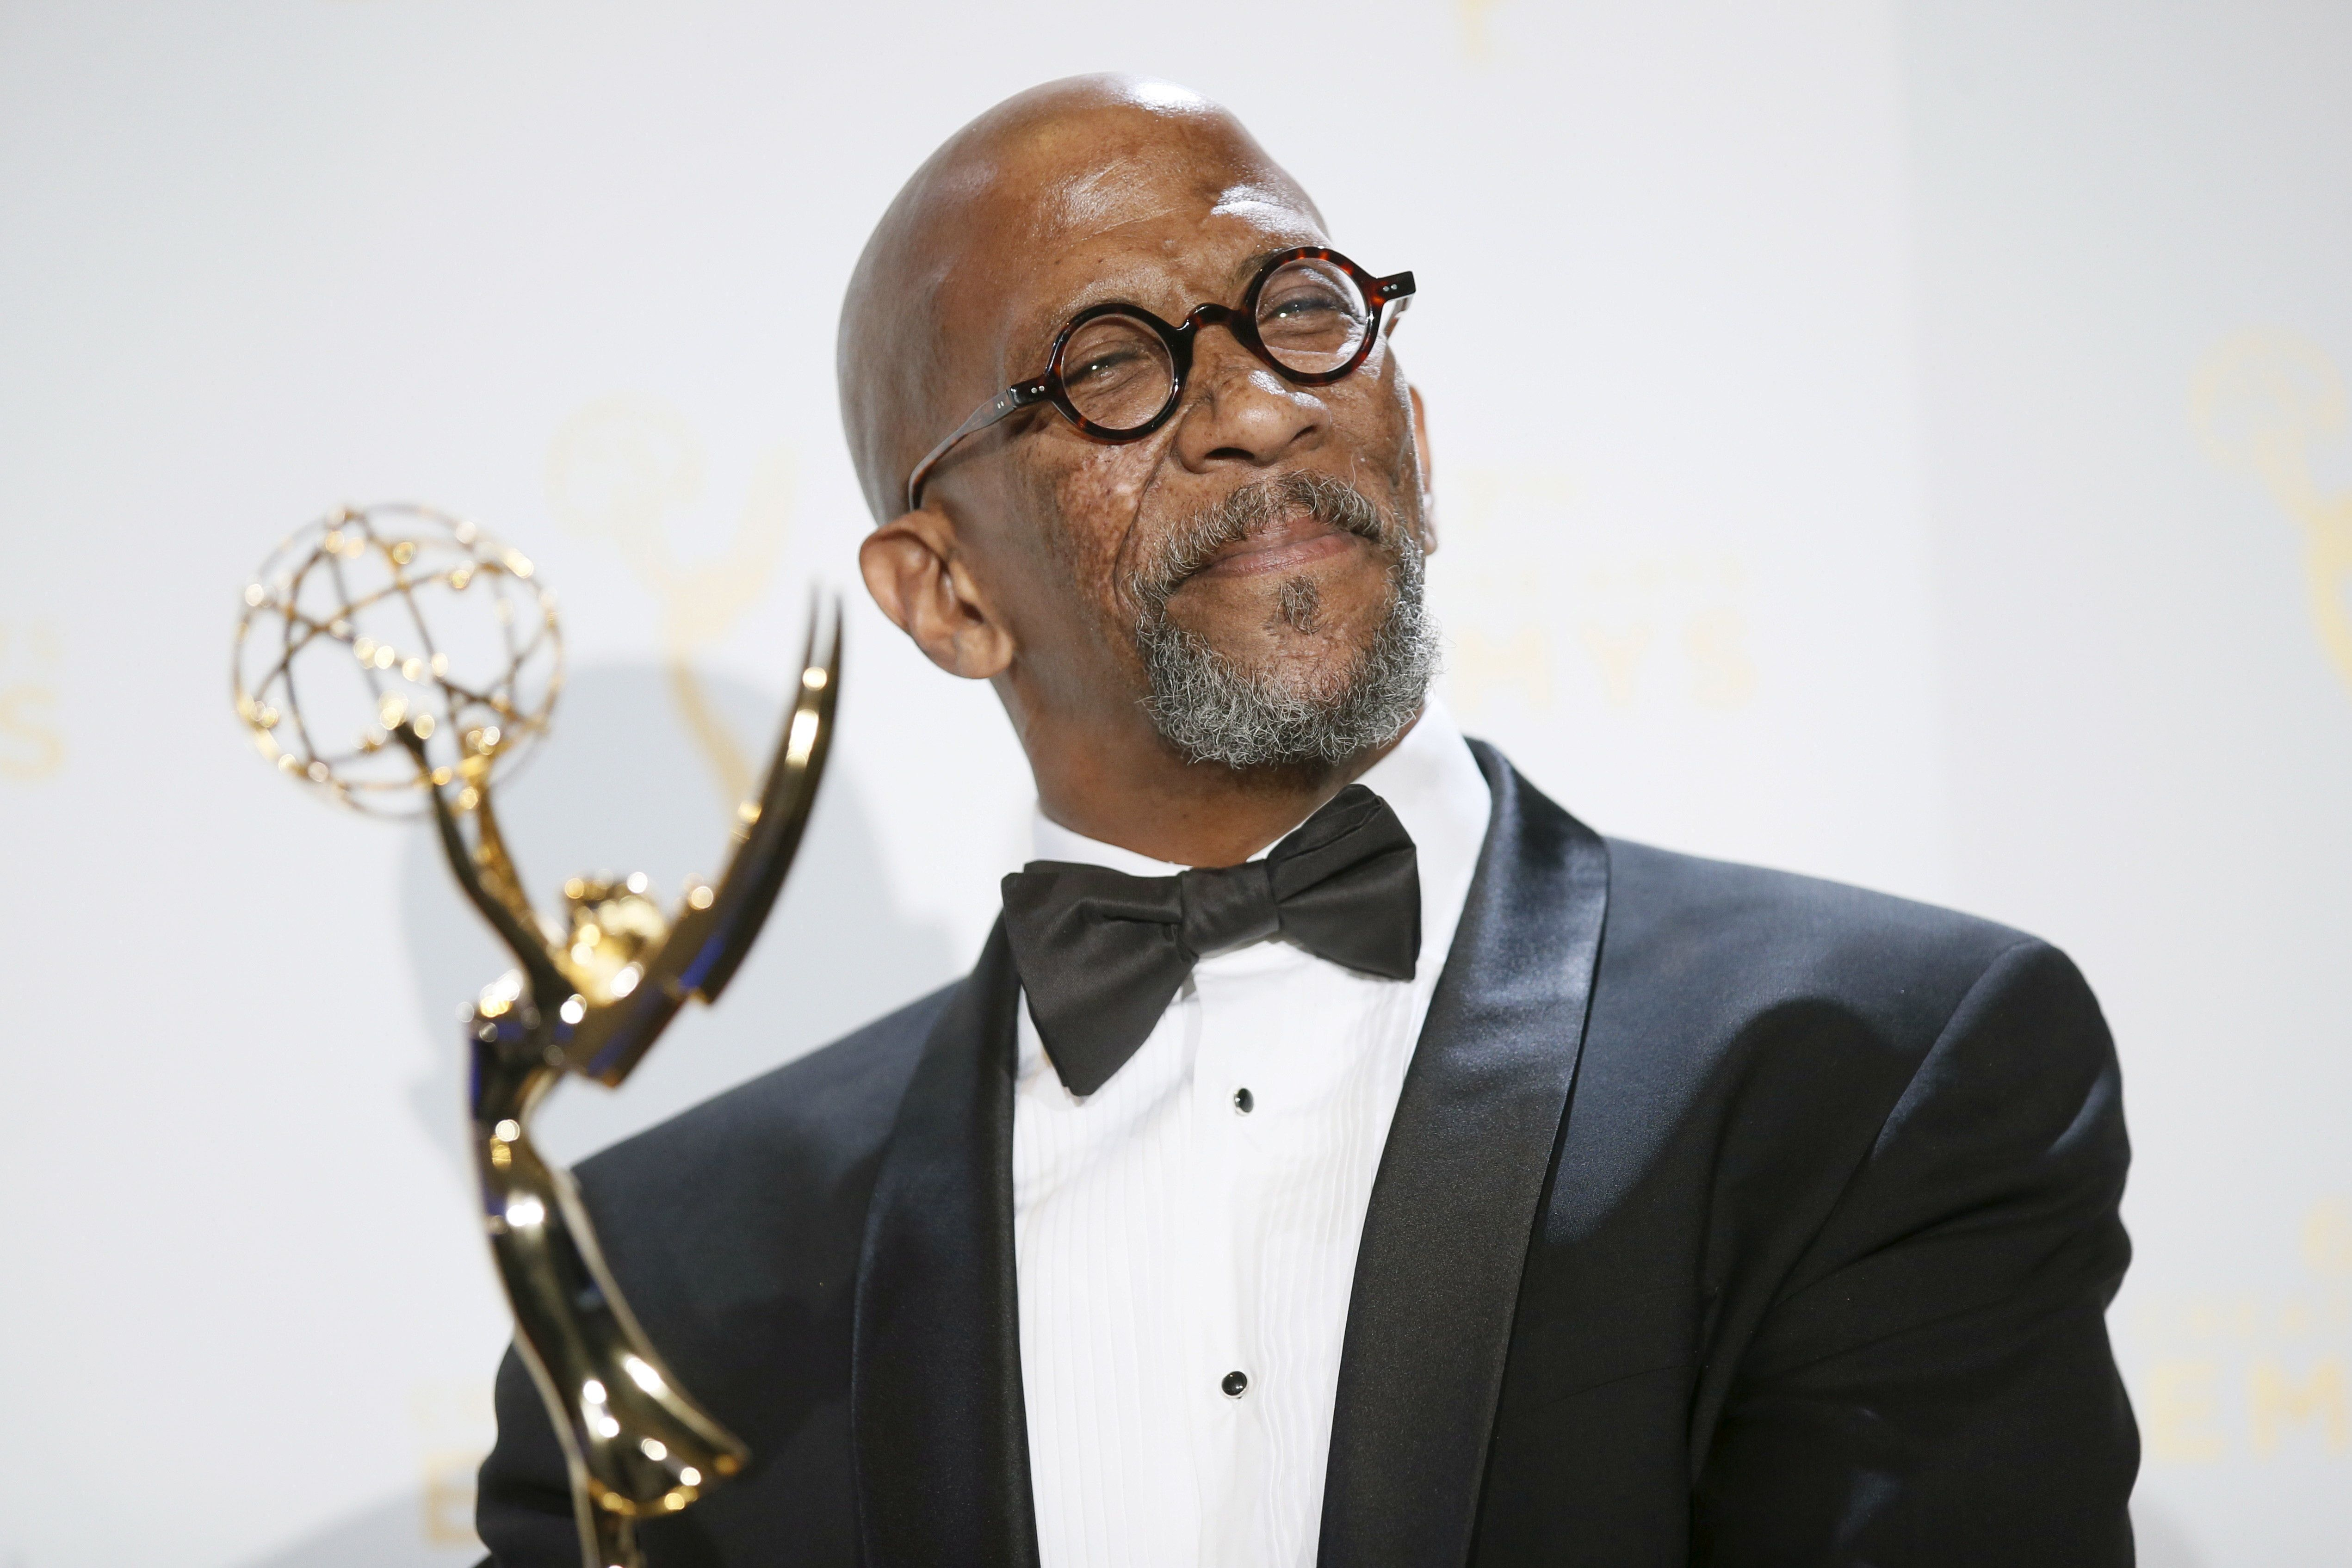 'House Of Cards' Actor Reg E. Cathey Is Dead At